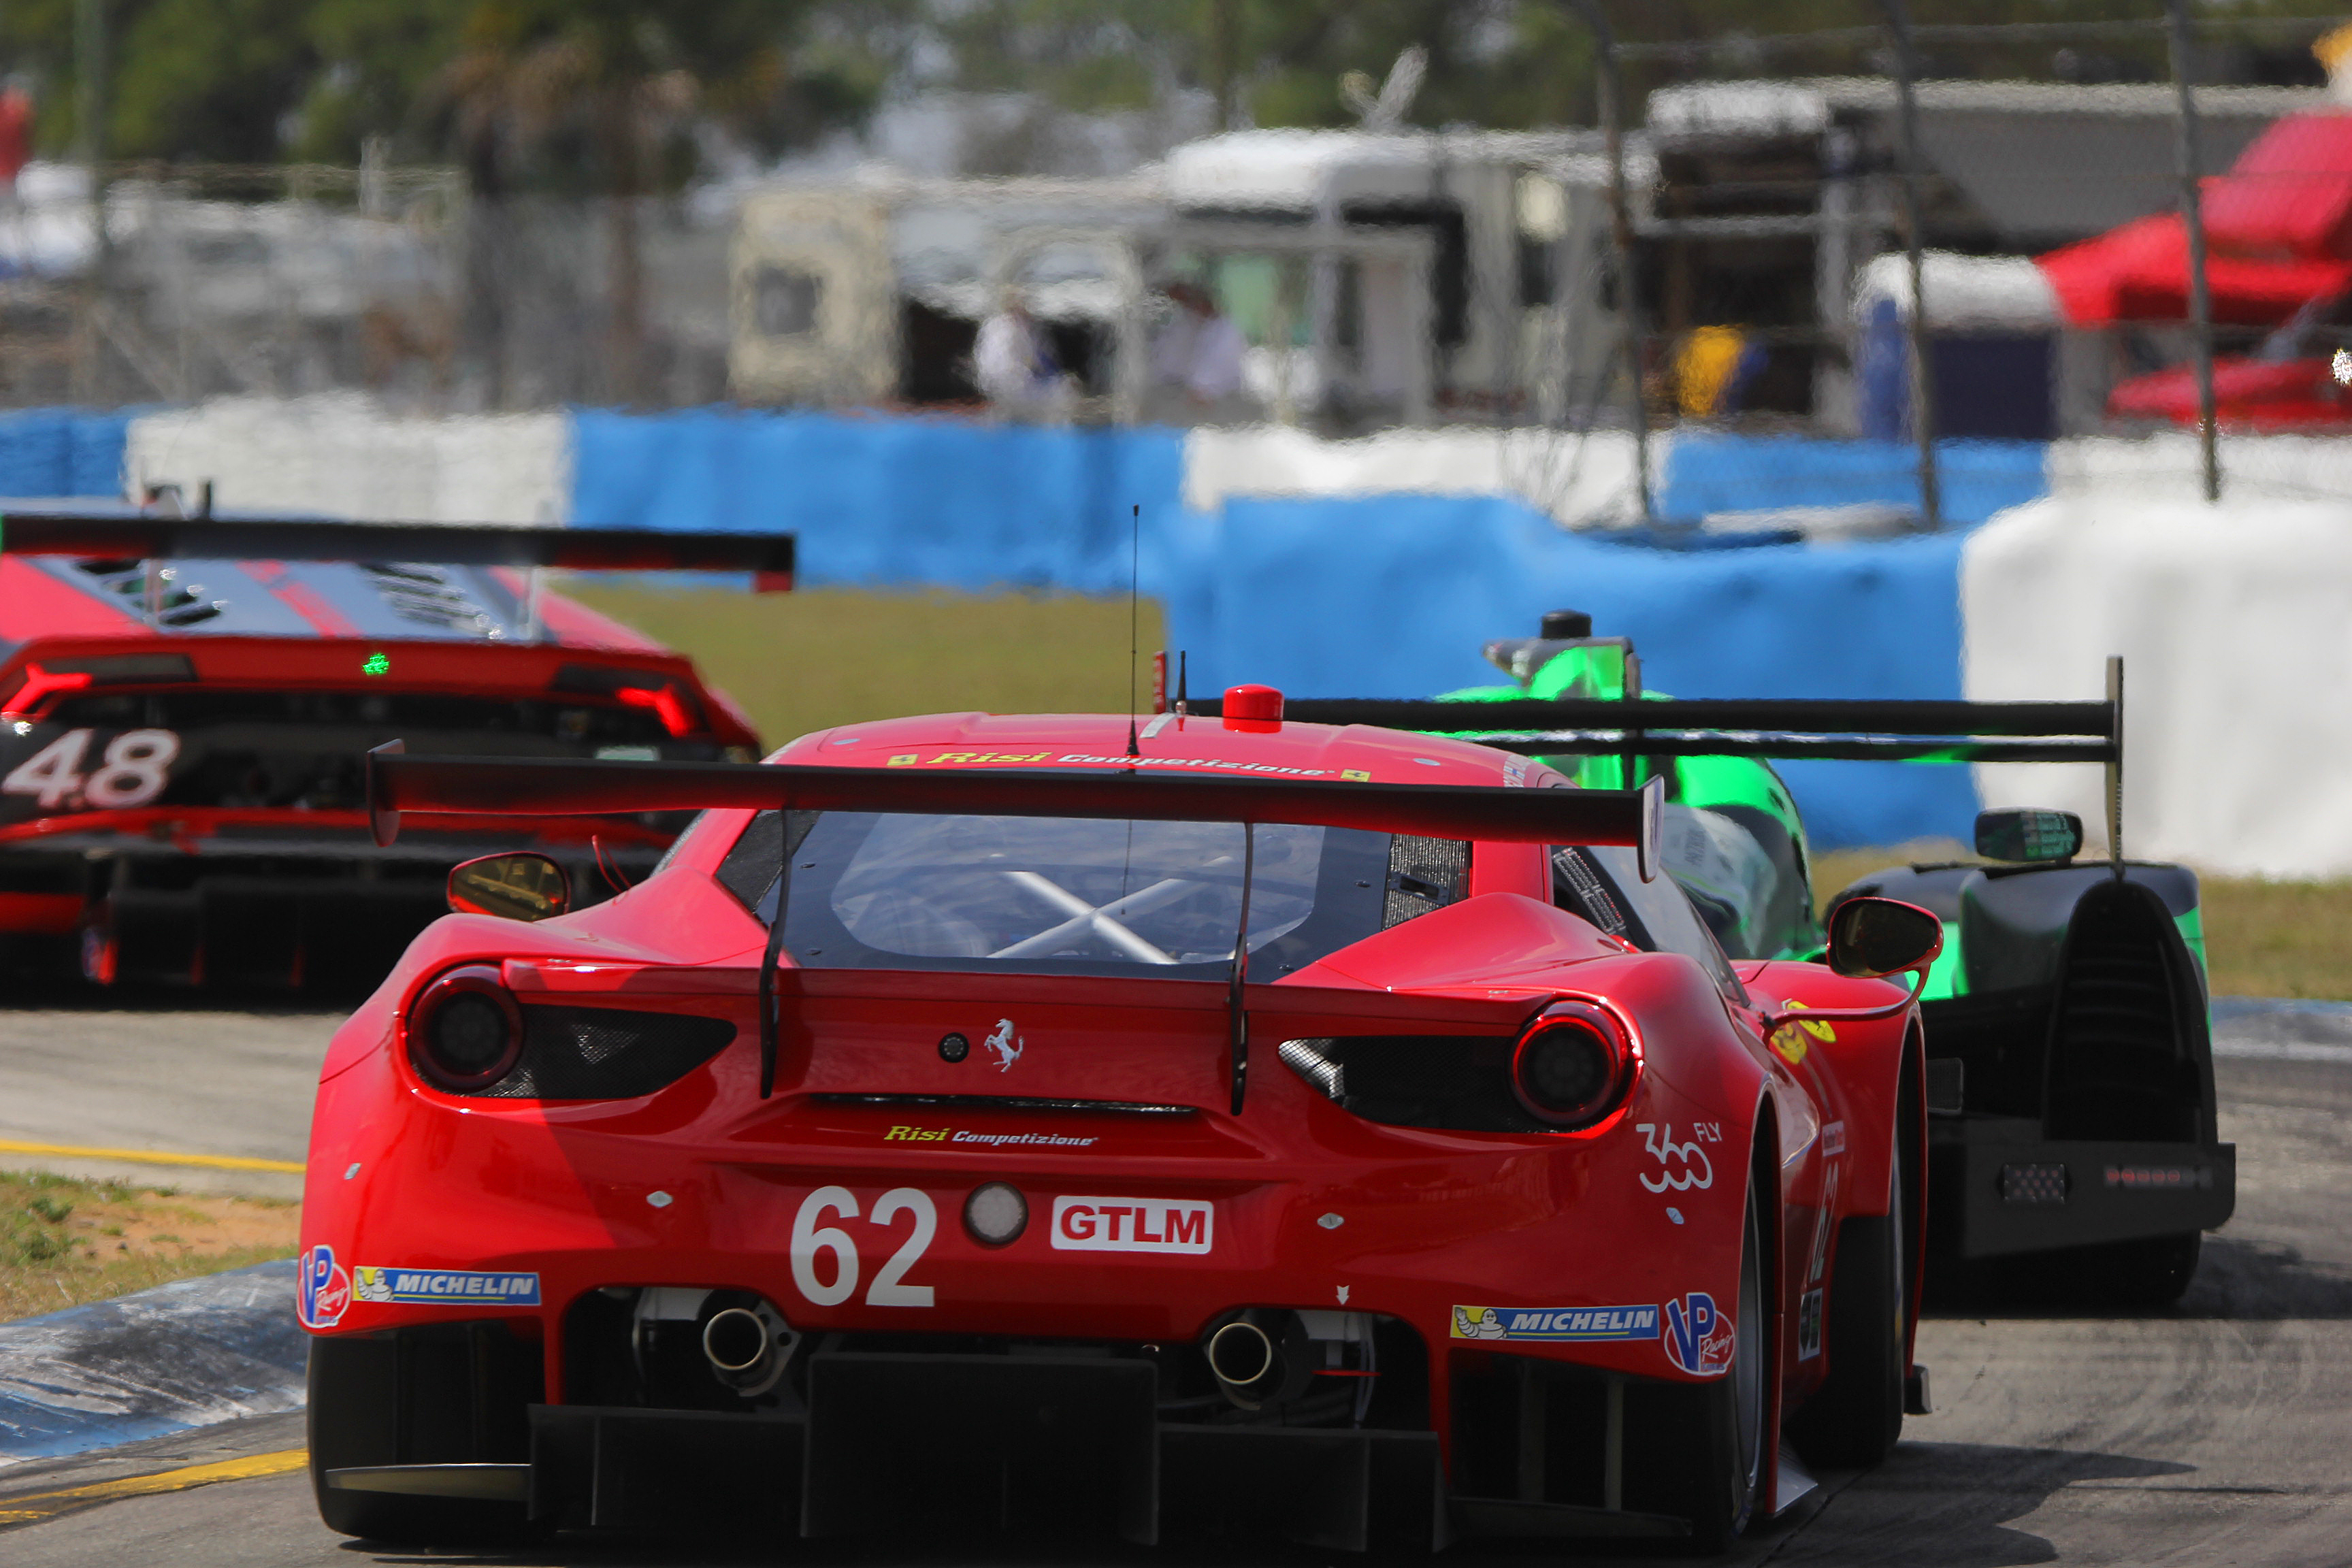 The 62 gtlm risi ferrari 488 chases the 2 p esm ligier honda